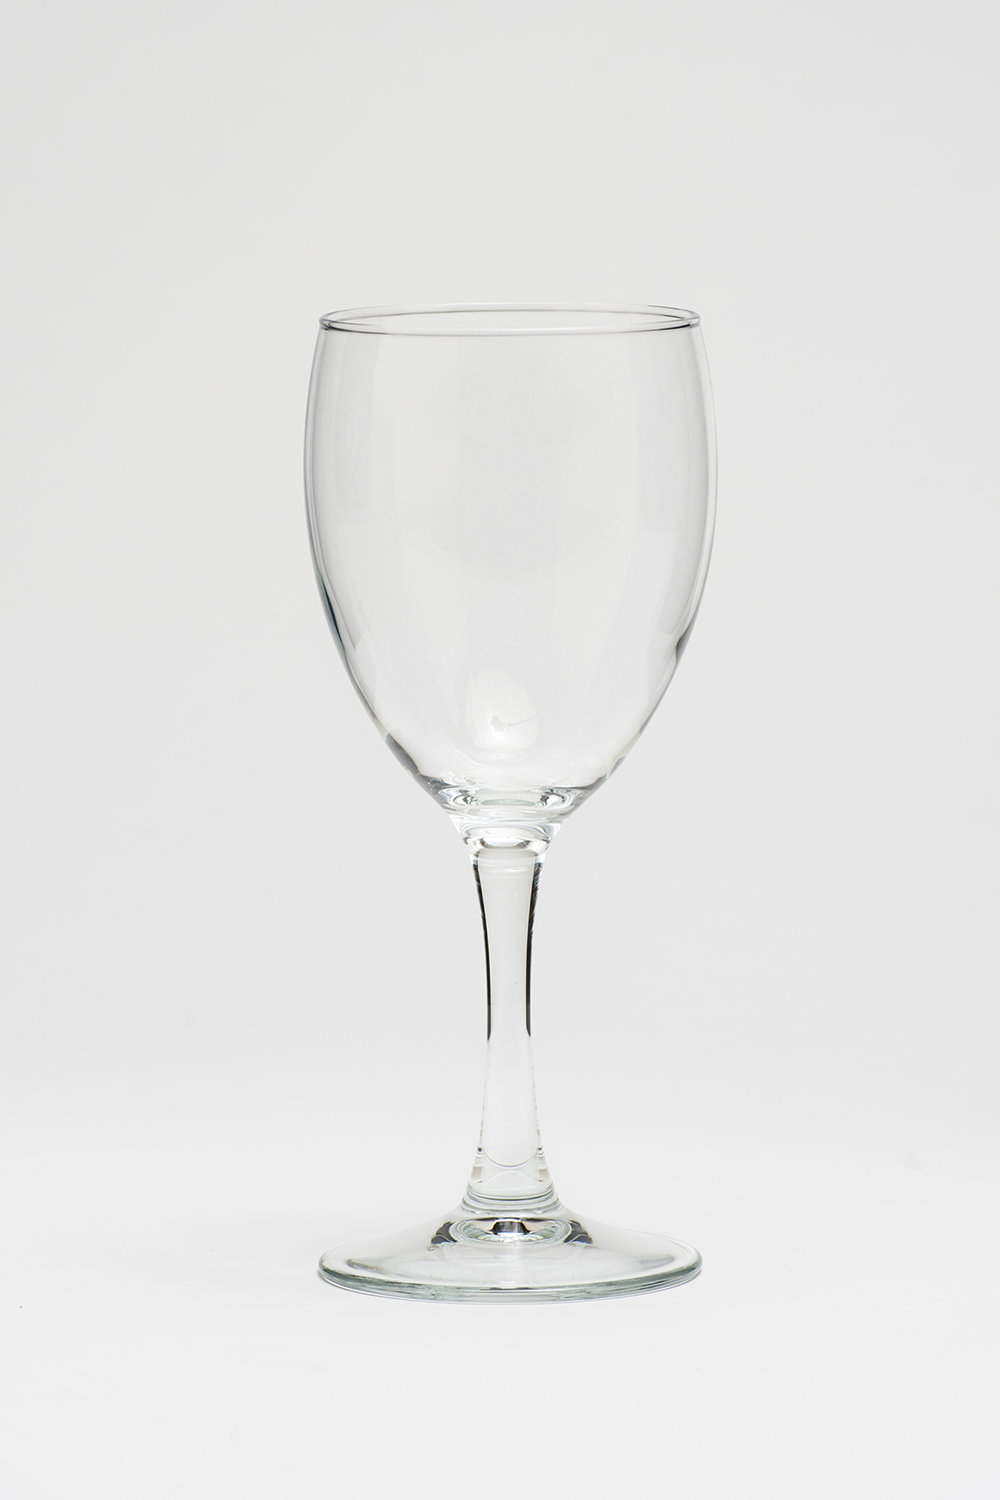 "All Purpose Medium Wine 8 oz. Height 7"" Width 2.5/8"" $0.65"